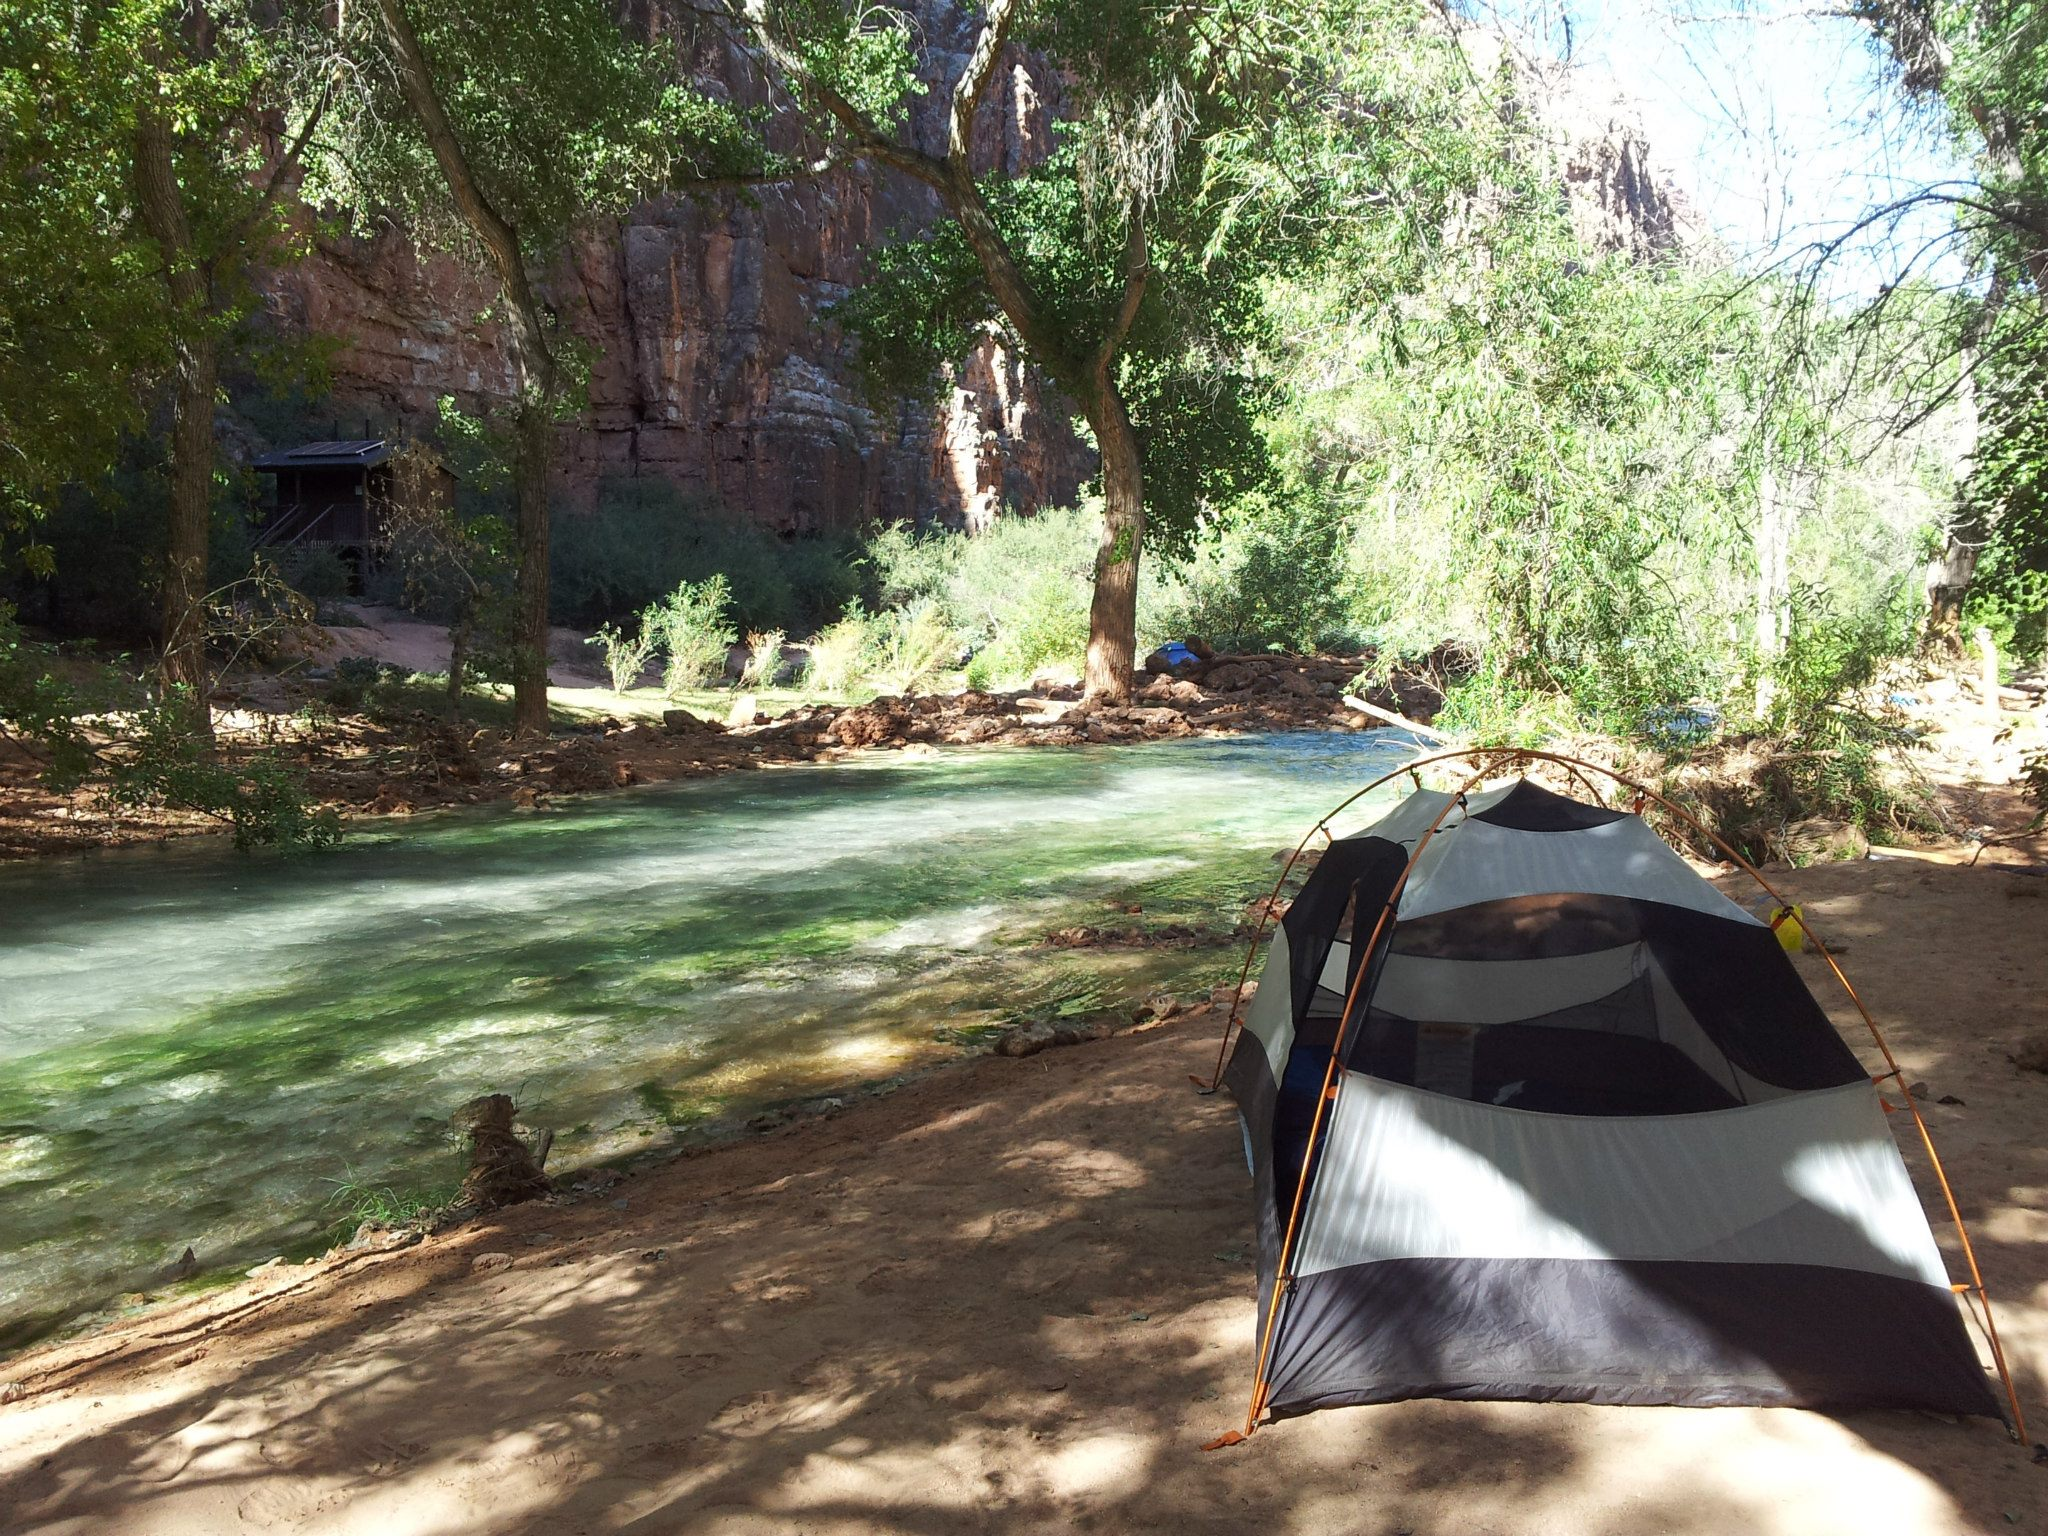 Our second night's camp spot right by one of the turquoise rivers that flow through the campgrounds